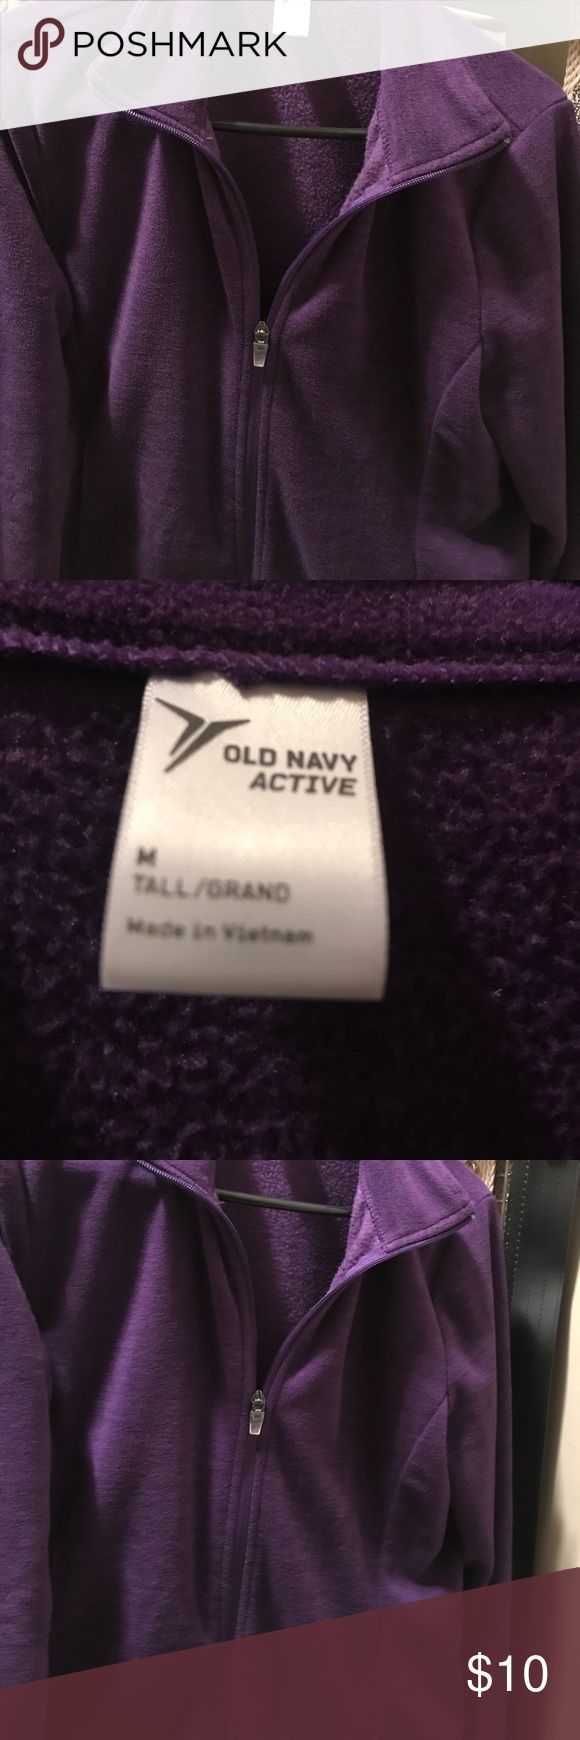 NWOT old navy fleece medium tall NWOT old navy fleece zip up.  Size medium tall.  Dark purple.  Great fall color.  Very soft.  Bundle and save!!! Old Navy Jackets & Coats